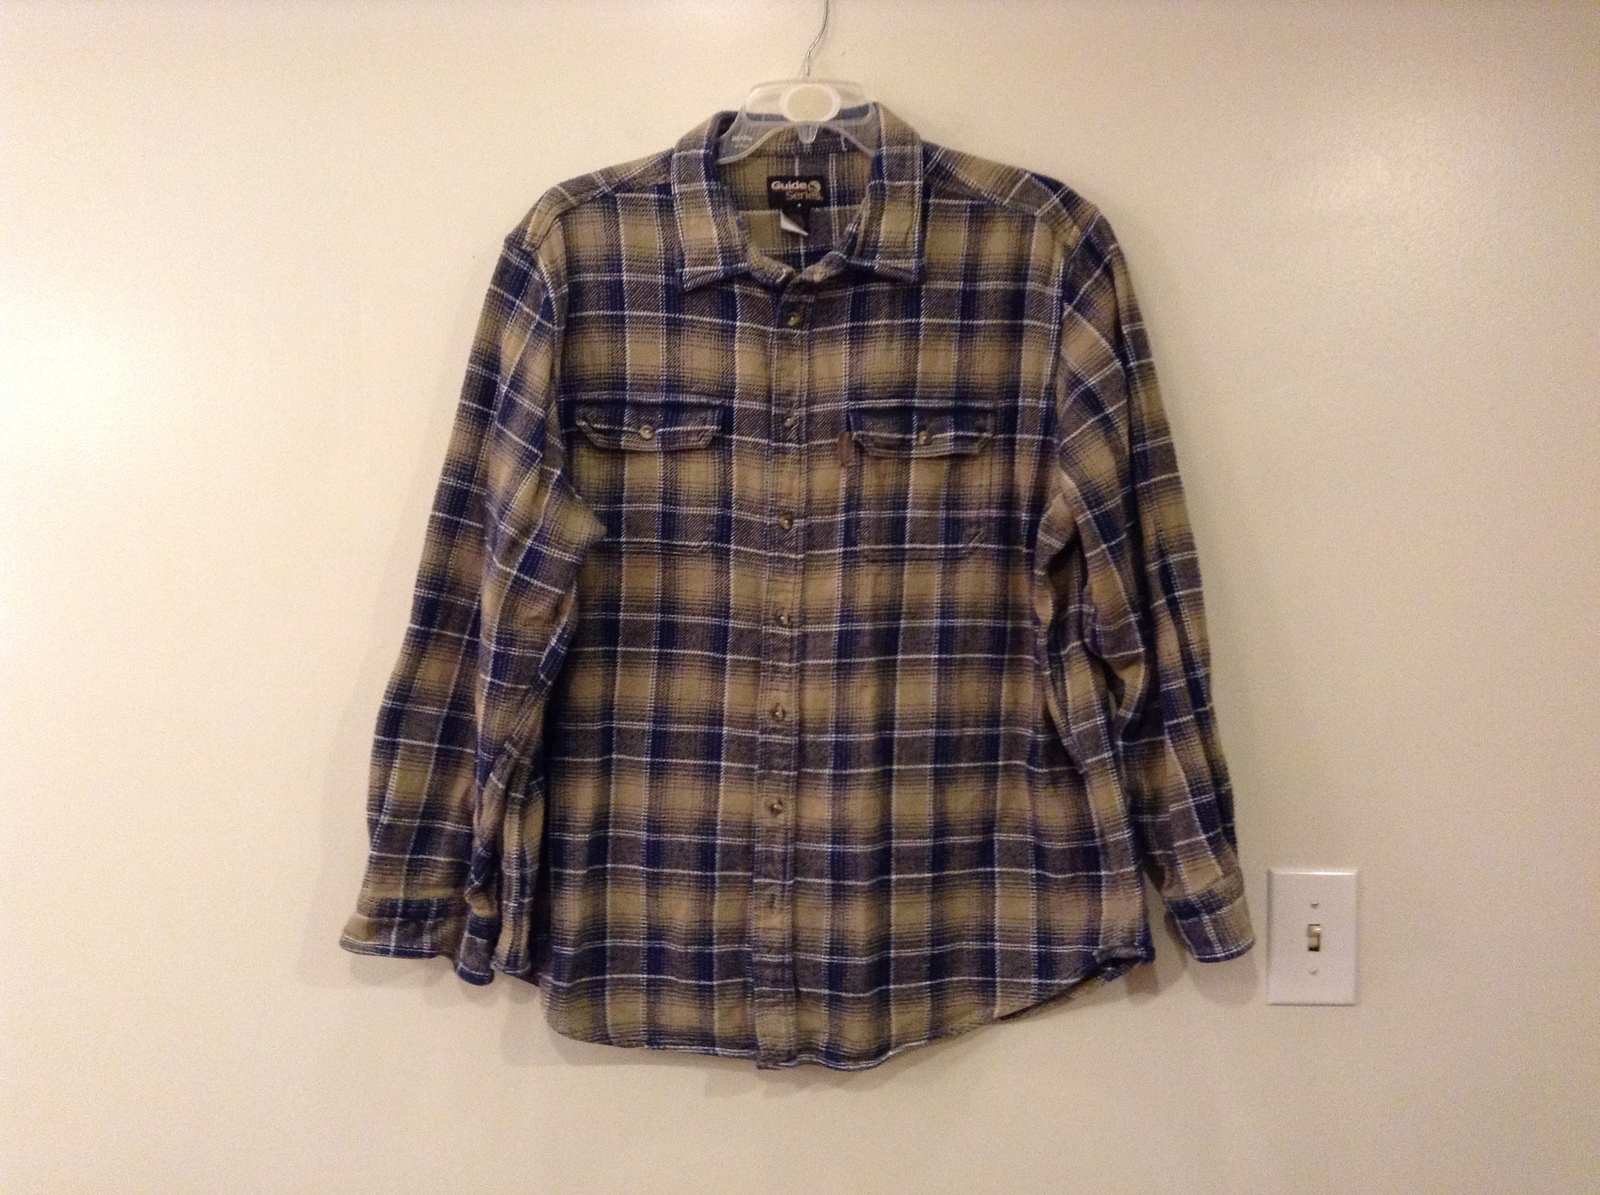 Guide Series Mens 100% Cotton Tan and Blue Plaid Casual Shirt, size 2XLT